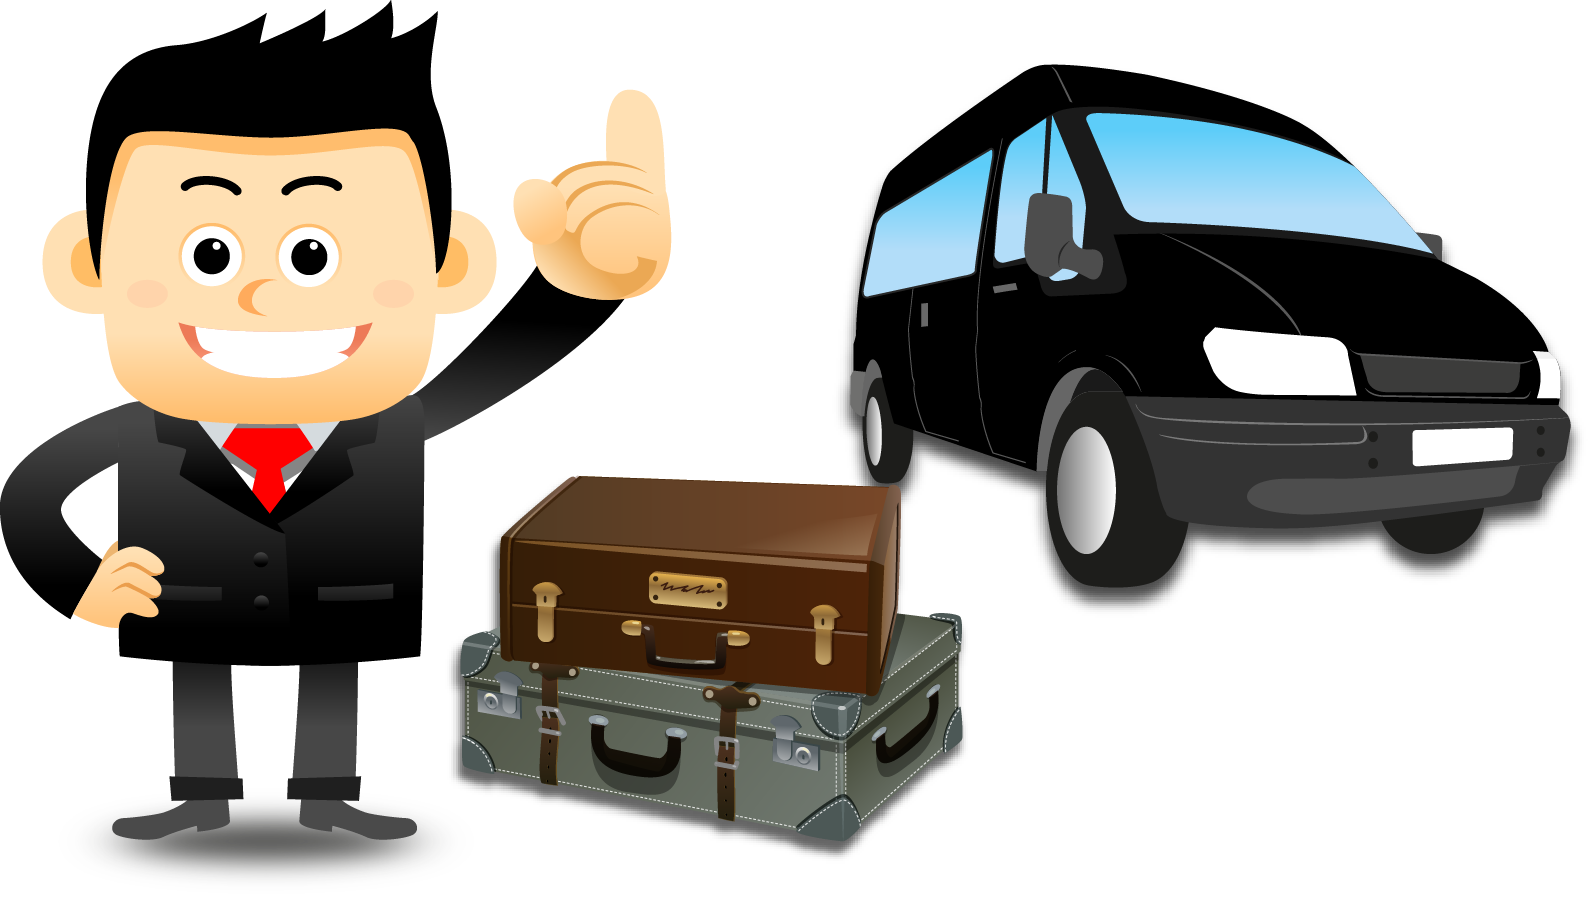 Tourist clipart service vehicle. Travel agency peru attractions